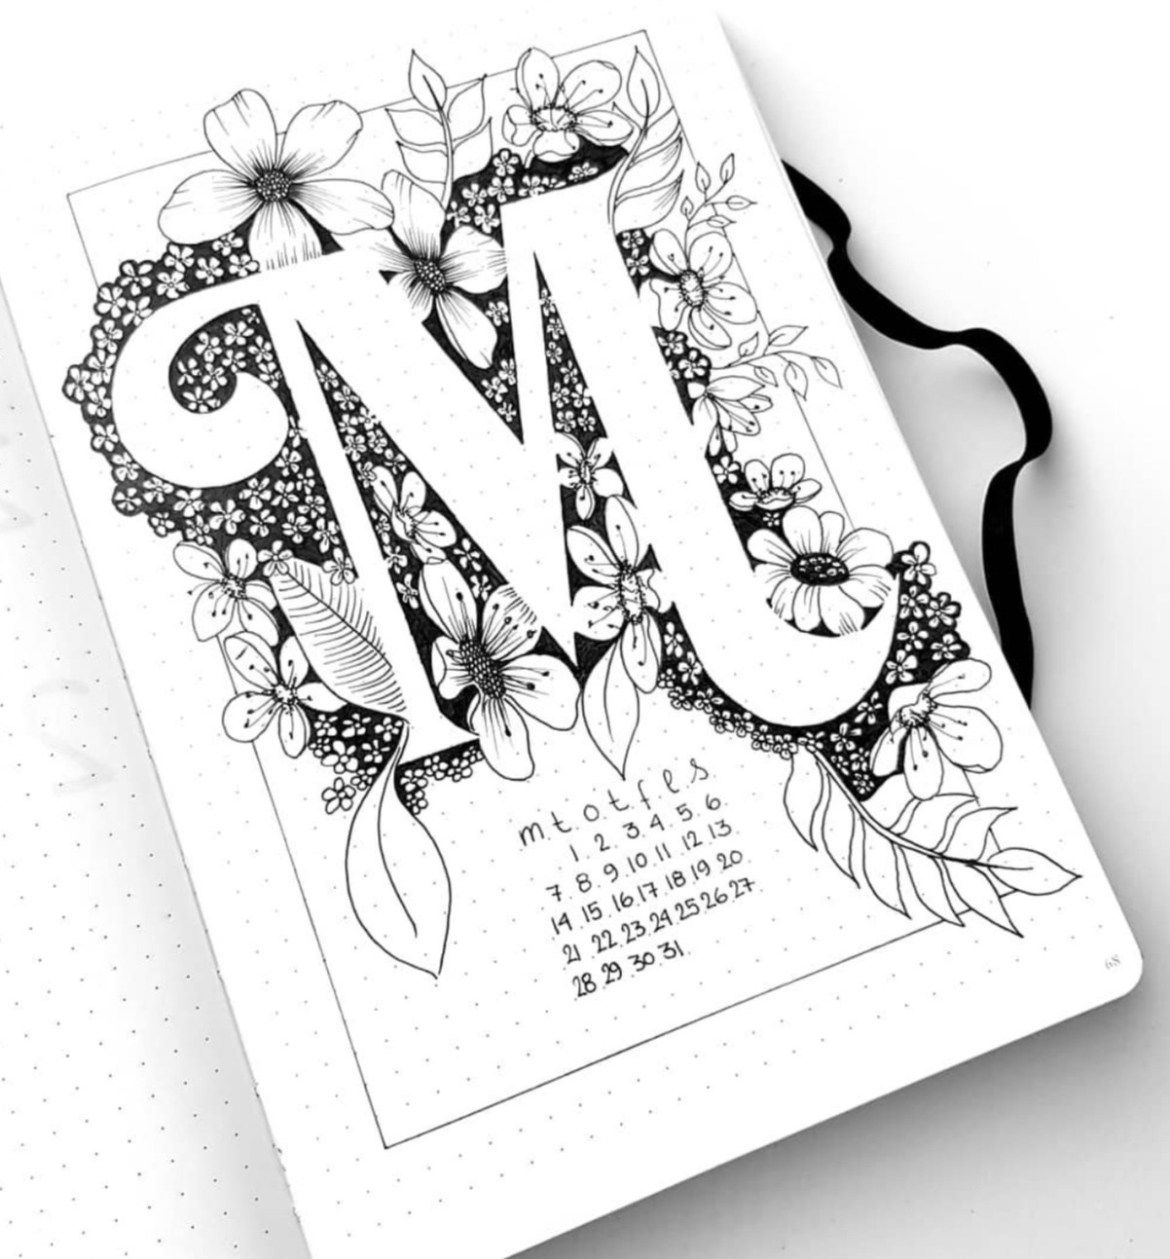 12 Gorgeous Bullet Journal Calendar Ideas - Live Better Lifestyle